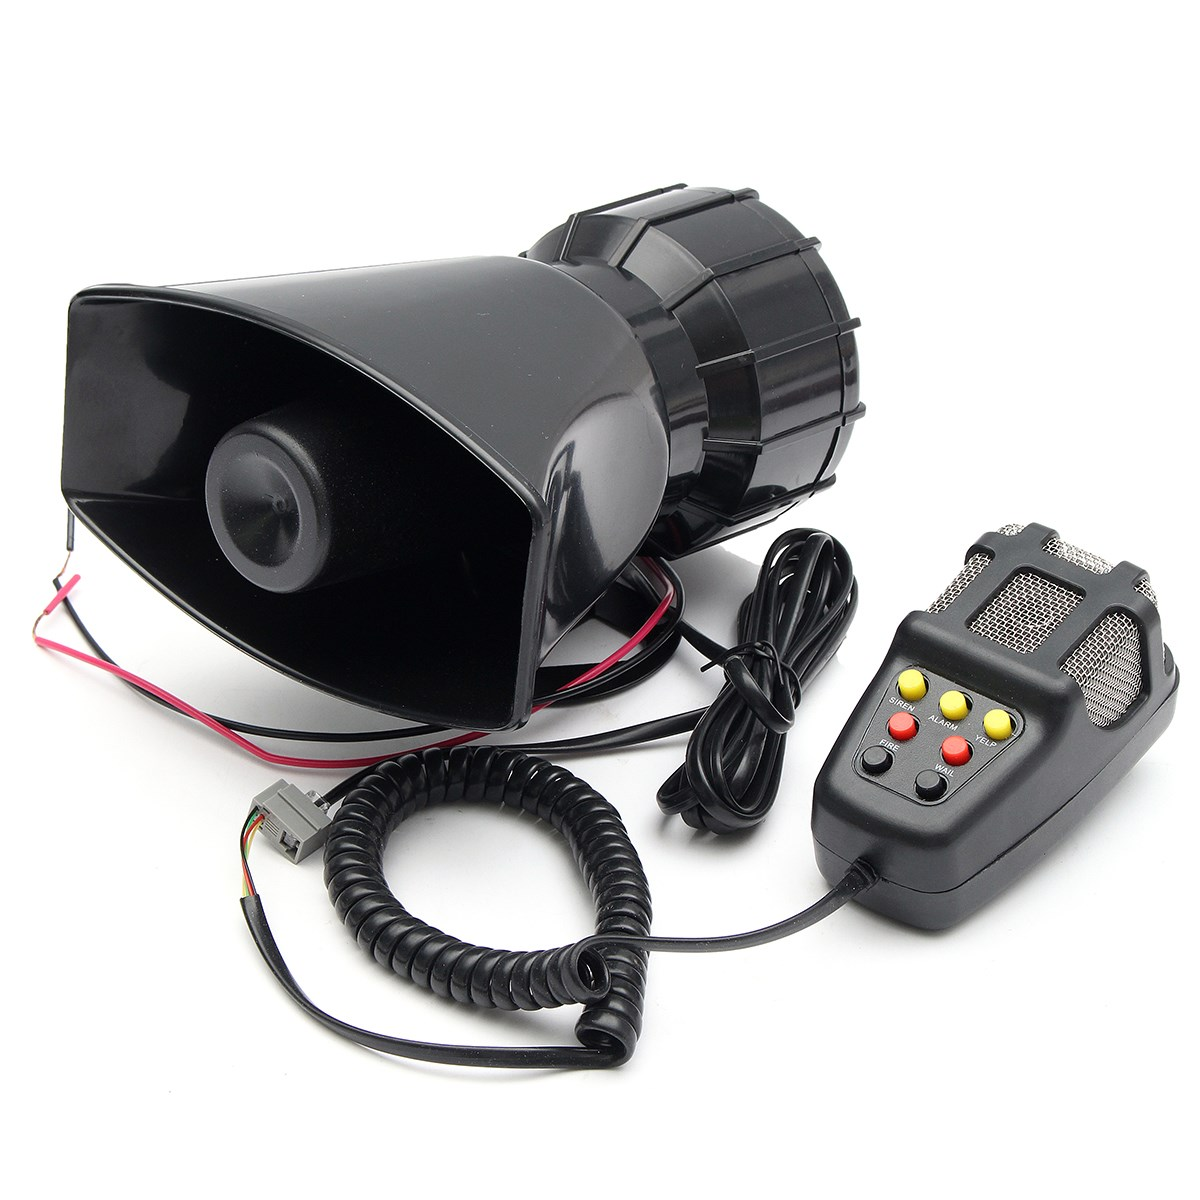 New 12V 115db Loud Air Horn Siren For Car Boat Truck 7 Sounds PA System w/Mic Black Universal